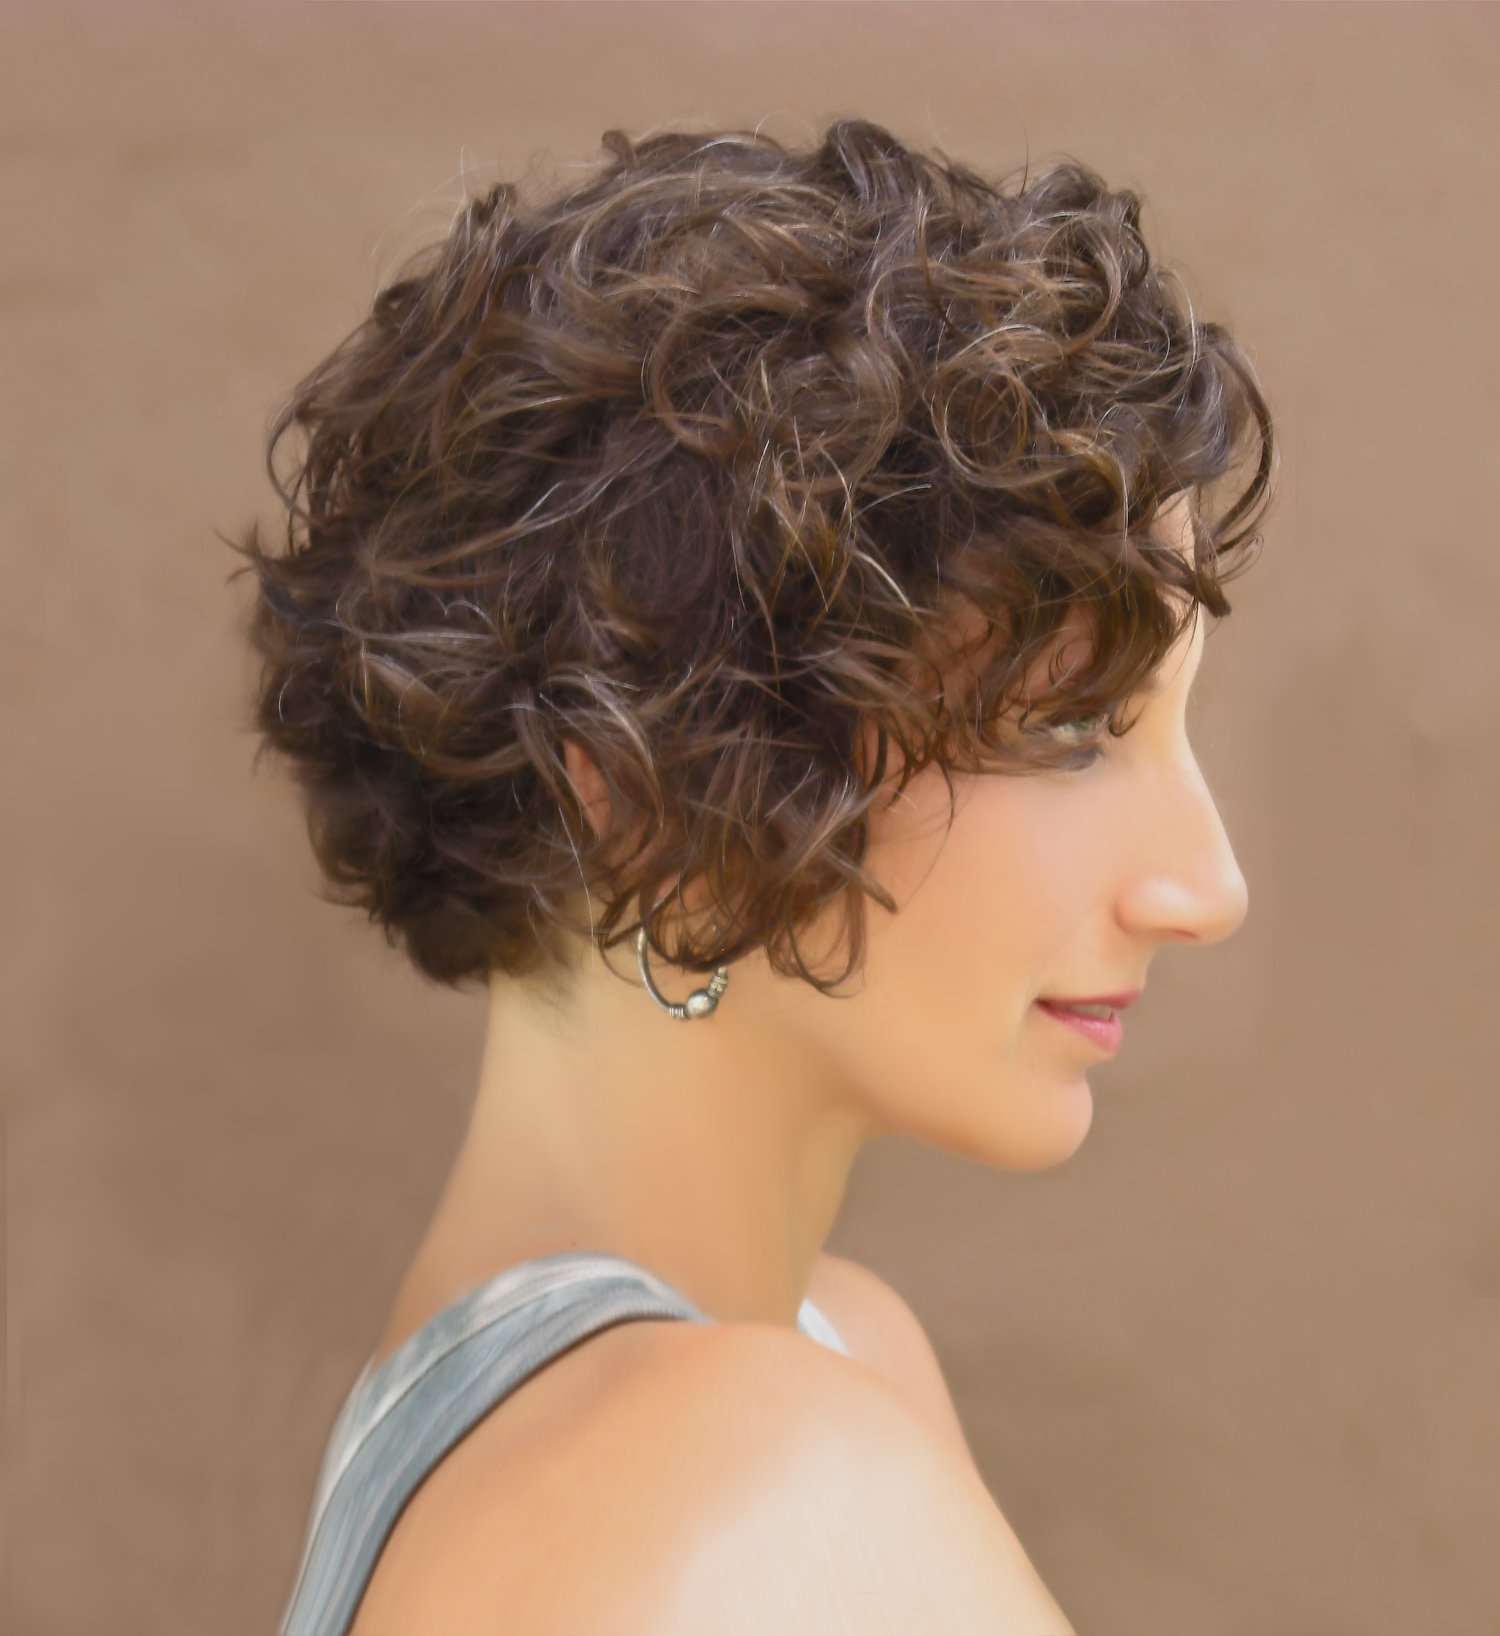 Profile view curly hair cut and style by Lari Manz